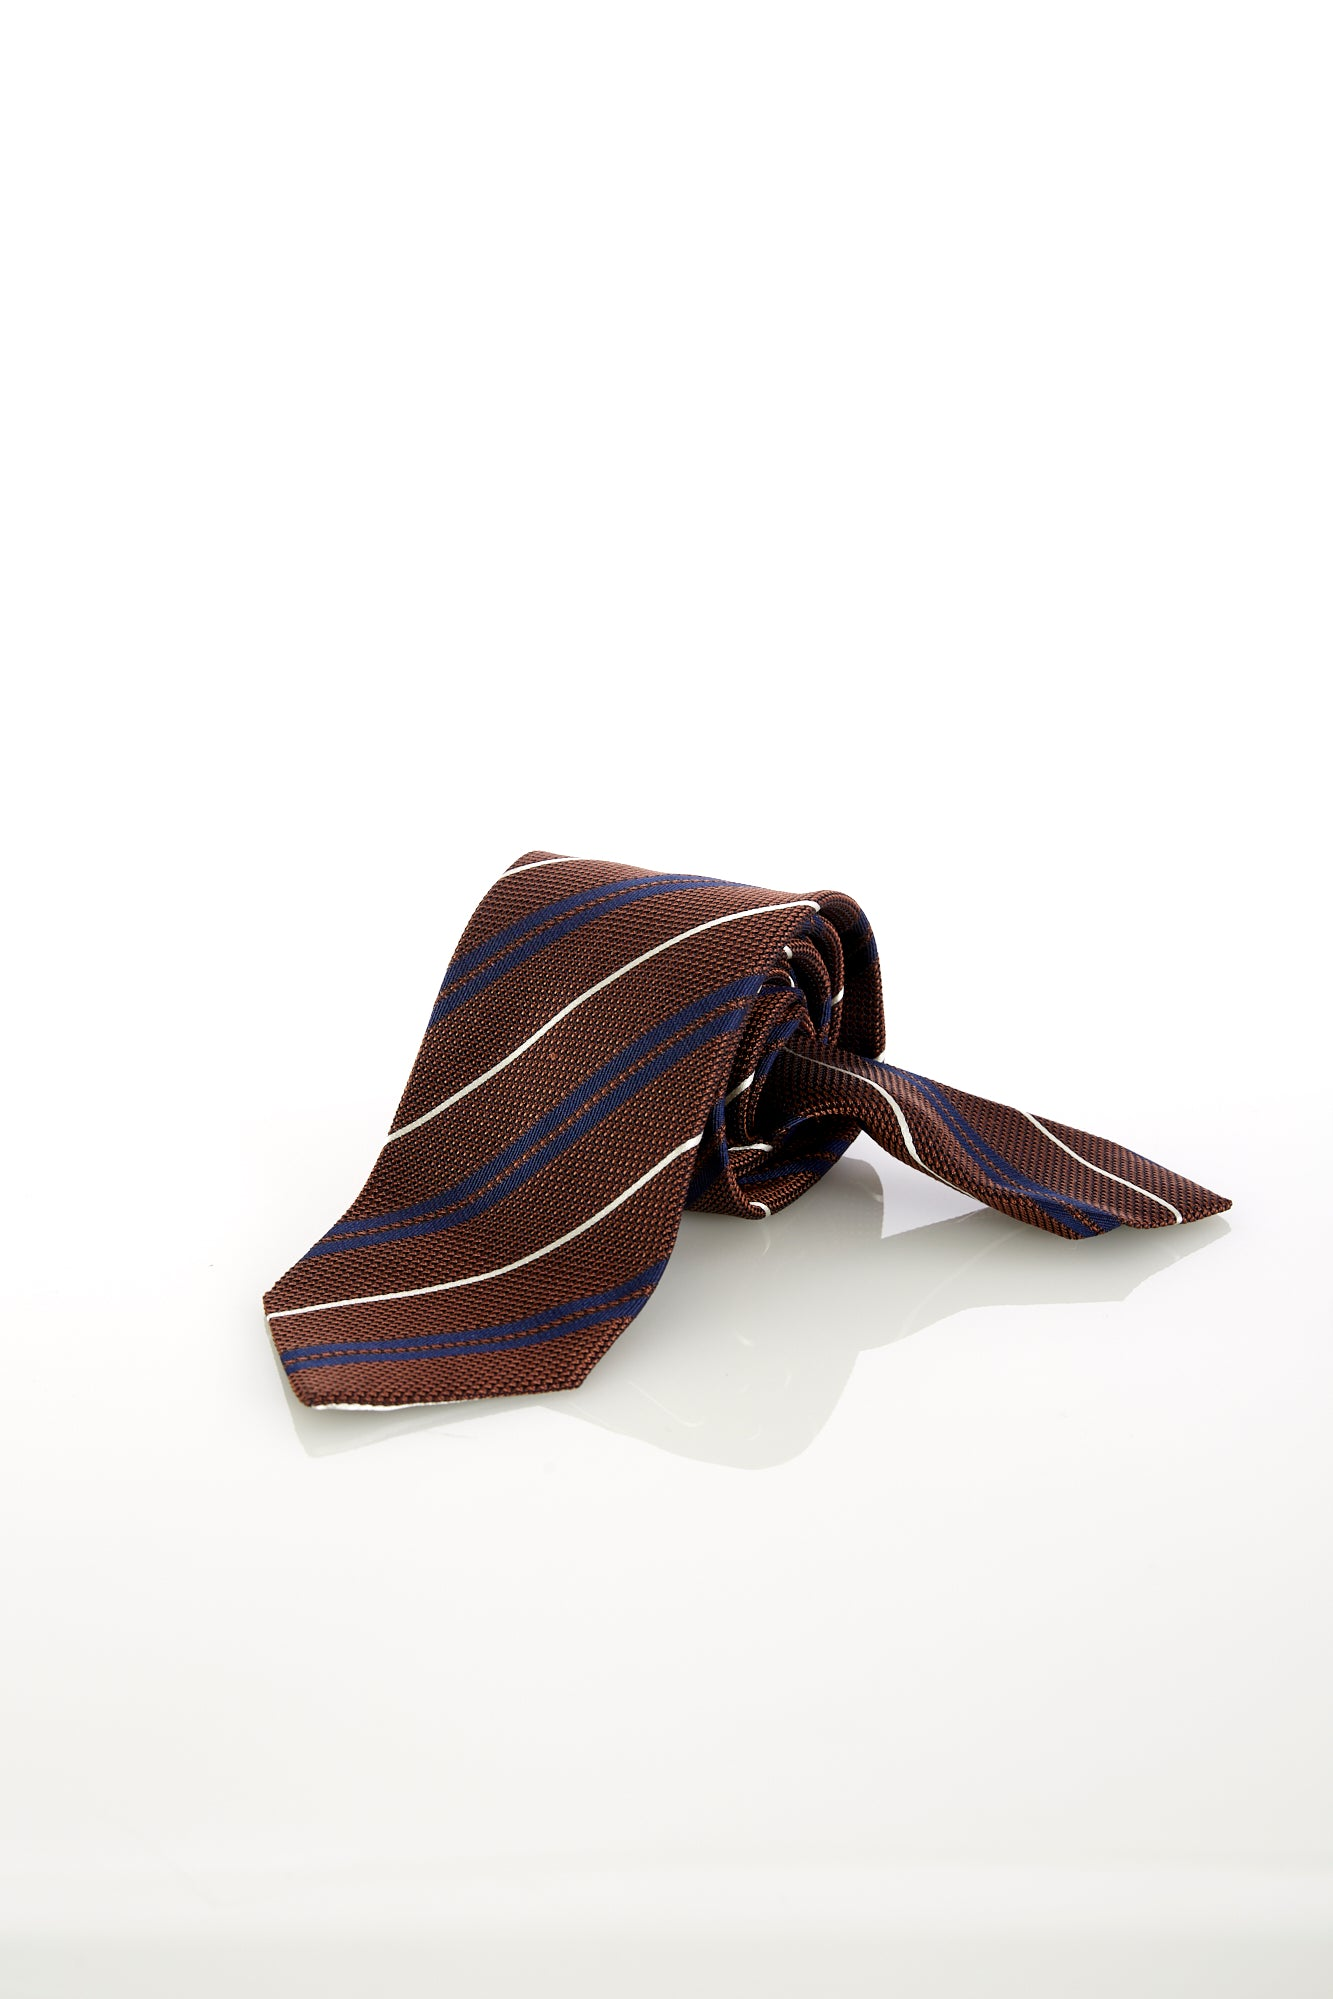 Drake's Orange Brown Woven Striped Silk Tie - Ties - Drake's - LALONDE's